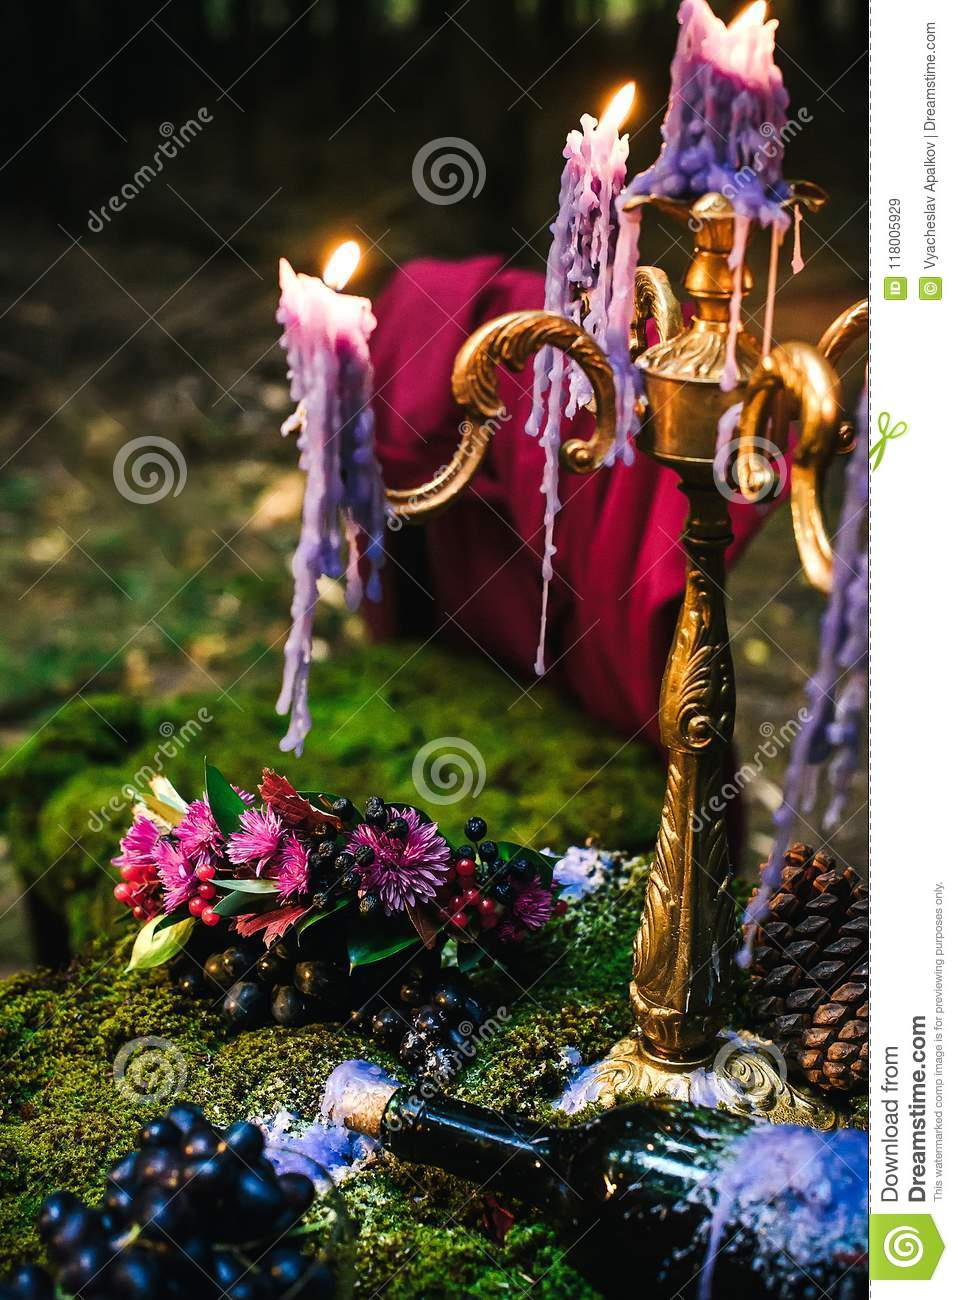 Romantic table with moss, candles dripping